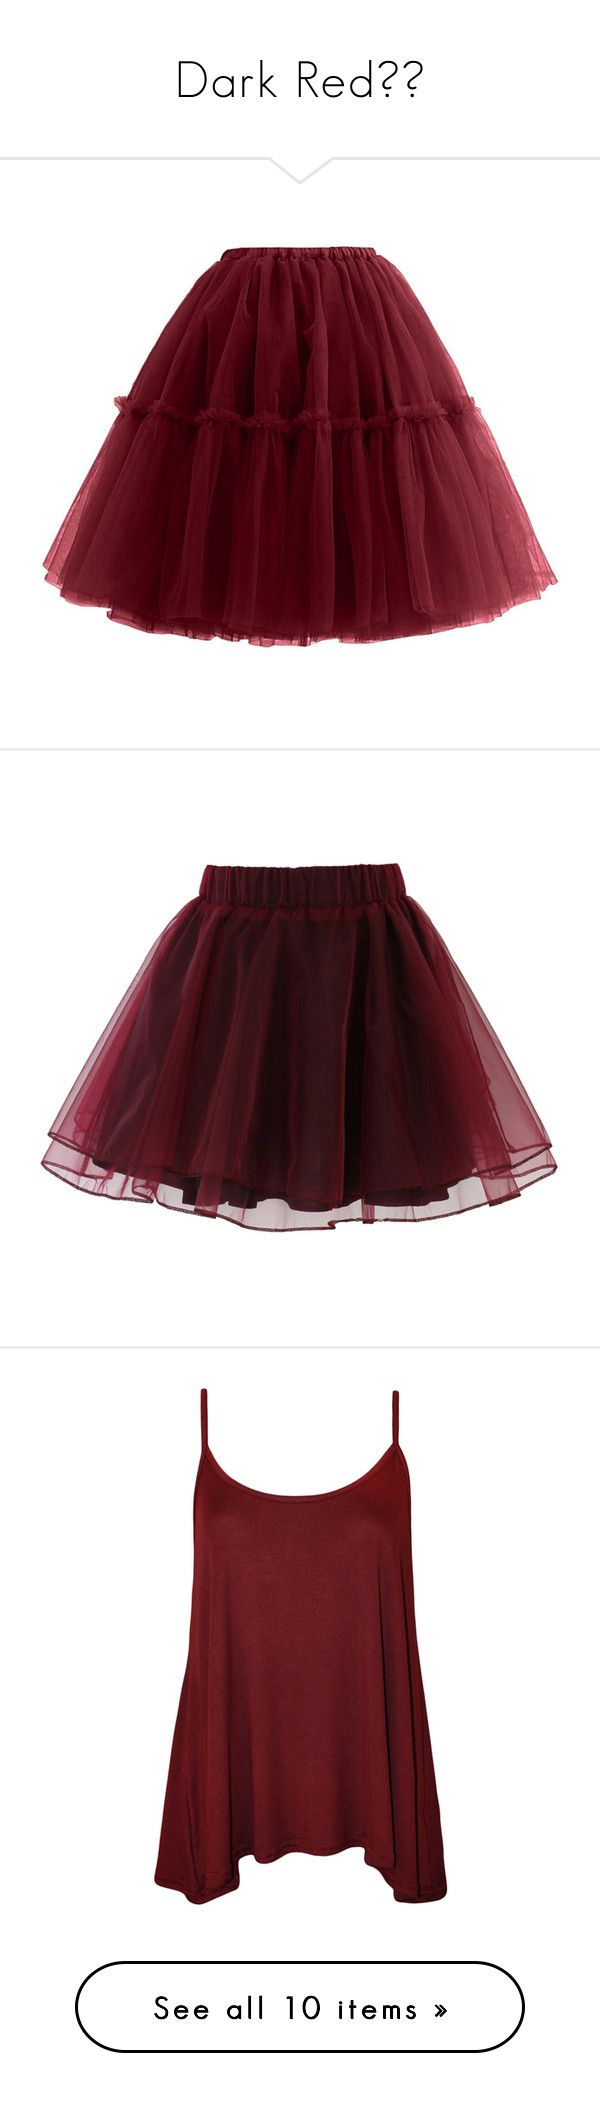 """""""Dark Red♥️"""" by skh-siera18 ❤ liked on Polyvore featuring skirts, vintage jewelry, party jewelry, ballet jewelry, cocktail jewelry, evening jewelry, mini skirts, bottoms, saias and red"""